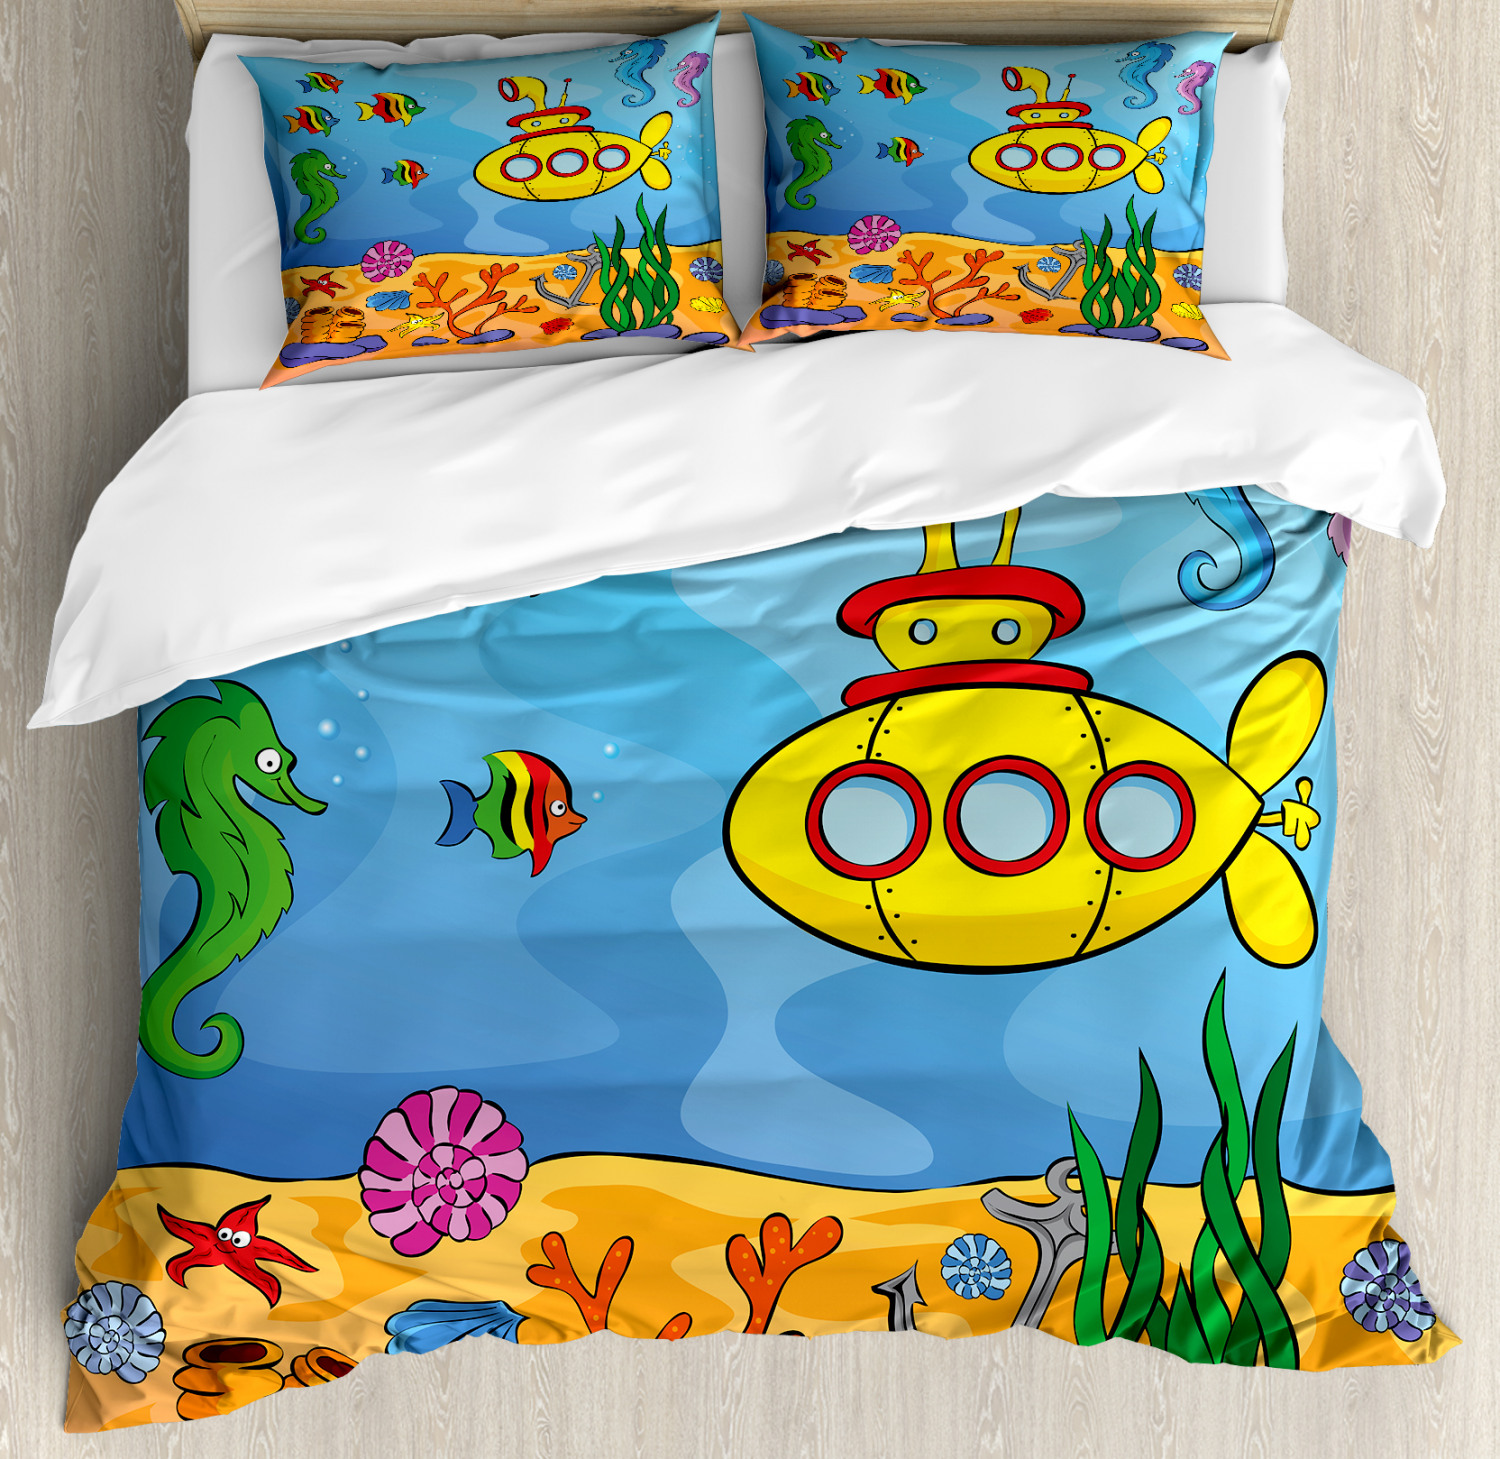 giallo Submarine Duvet Cover Set with Pillow Shams Submarine Seahorse Print